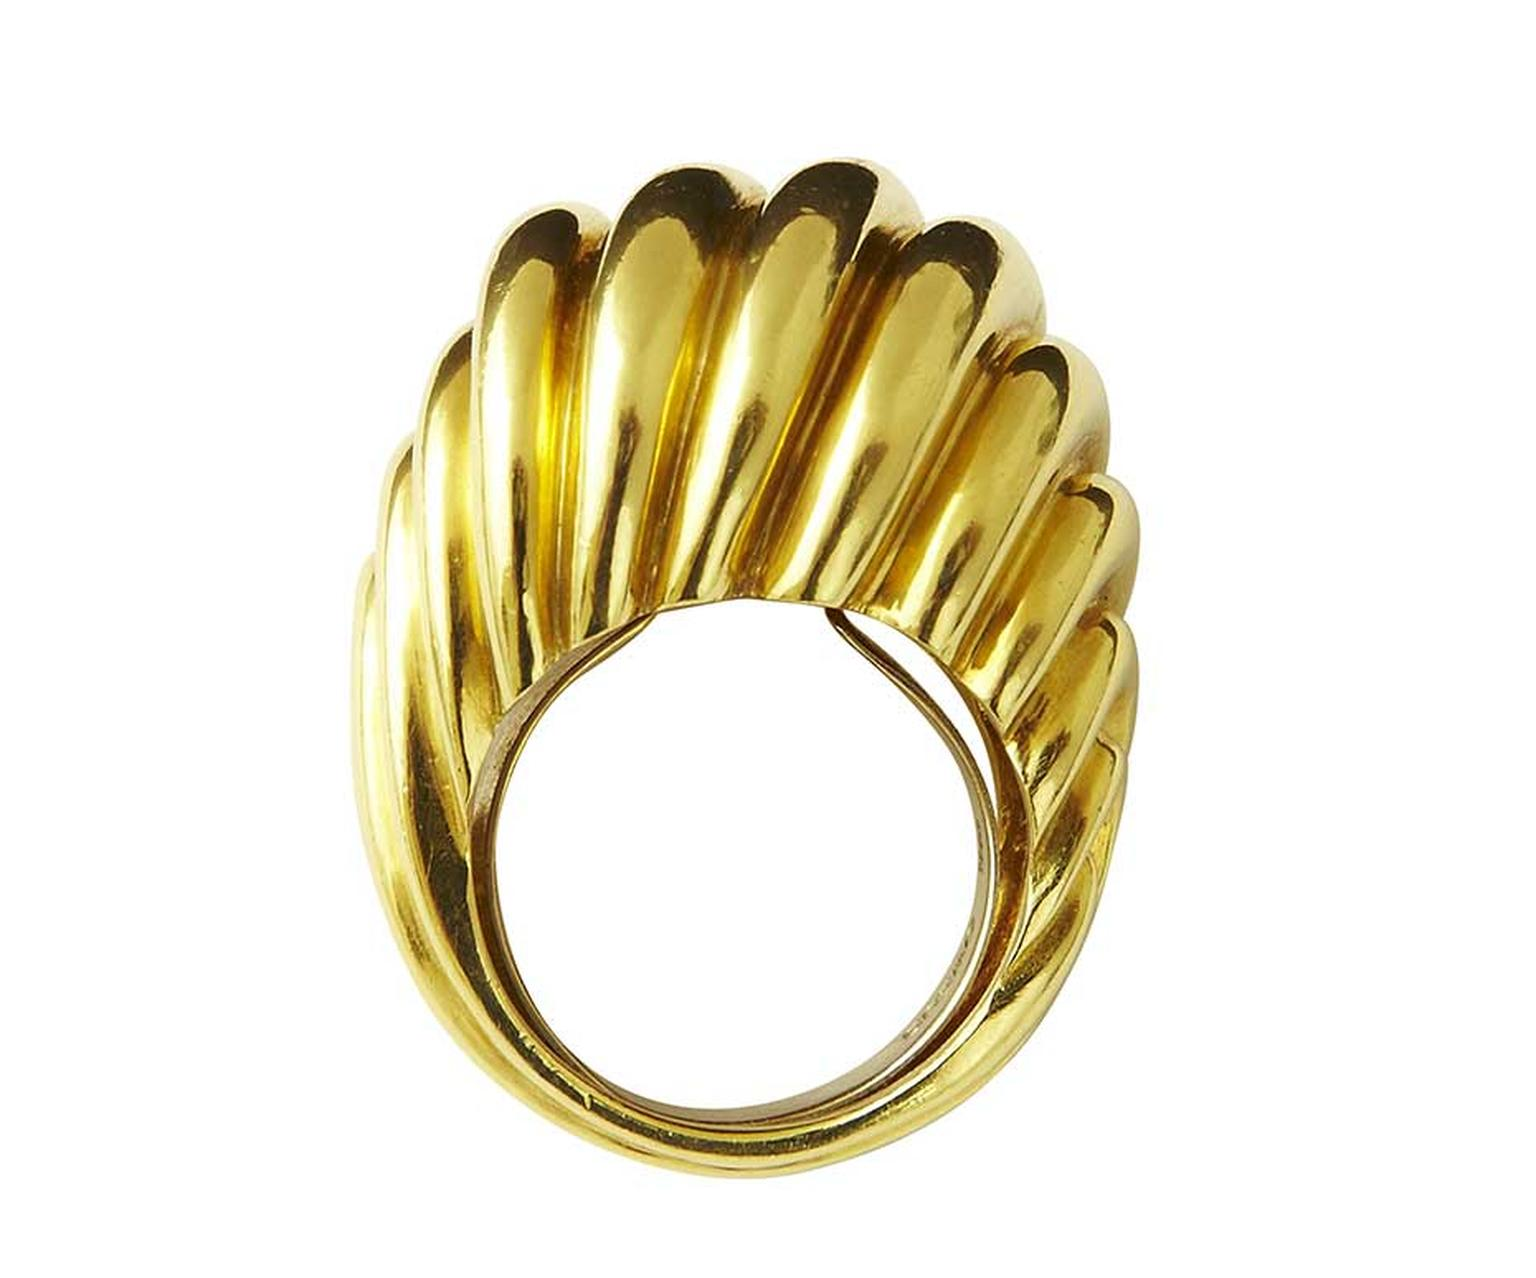 A classic David Webb gold cocktail ring, circa 1960 (estimate: £5,000-£7,000), which shows Webb's clear commitment to original design. To bid now, follow the link in the article.